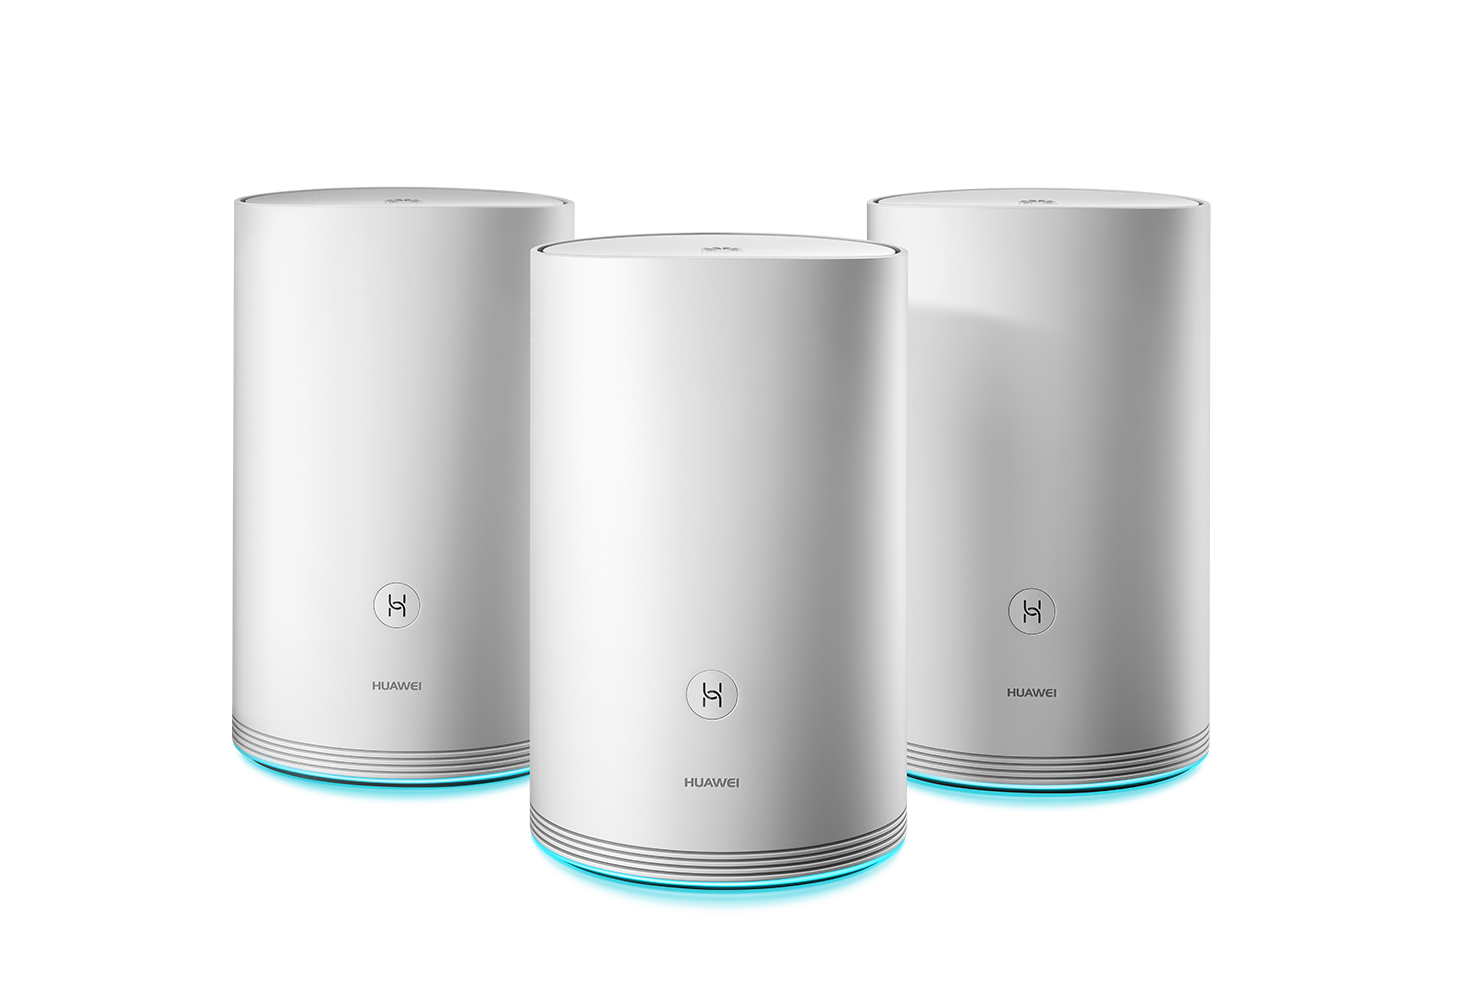 Huawei's new whole-home Wi-Fi system combines Powerline and mesh